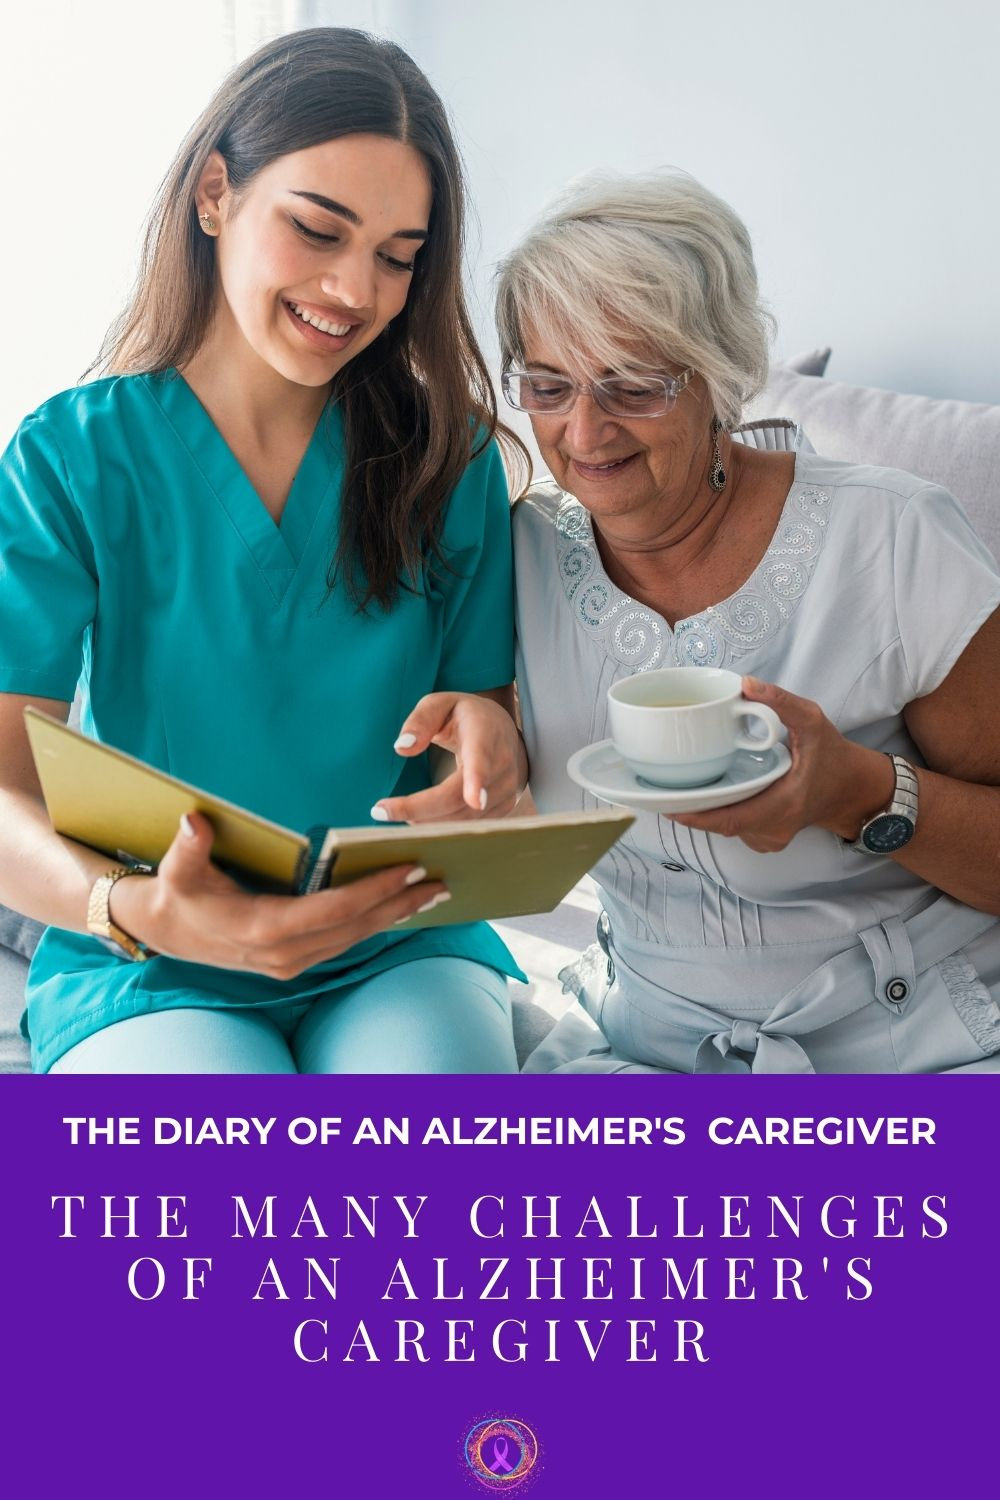 caregiver reading to her patient